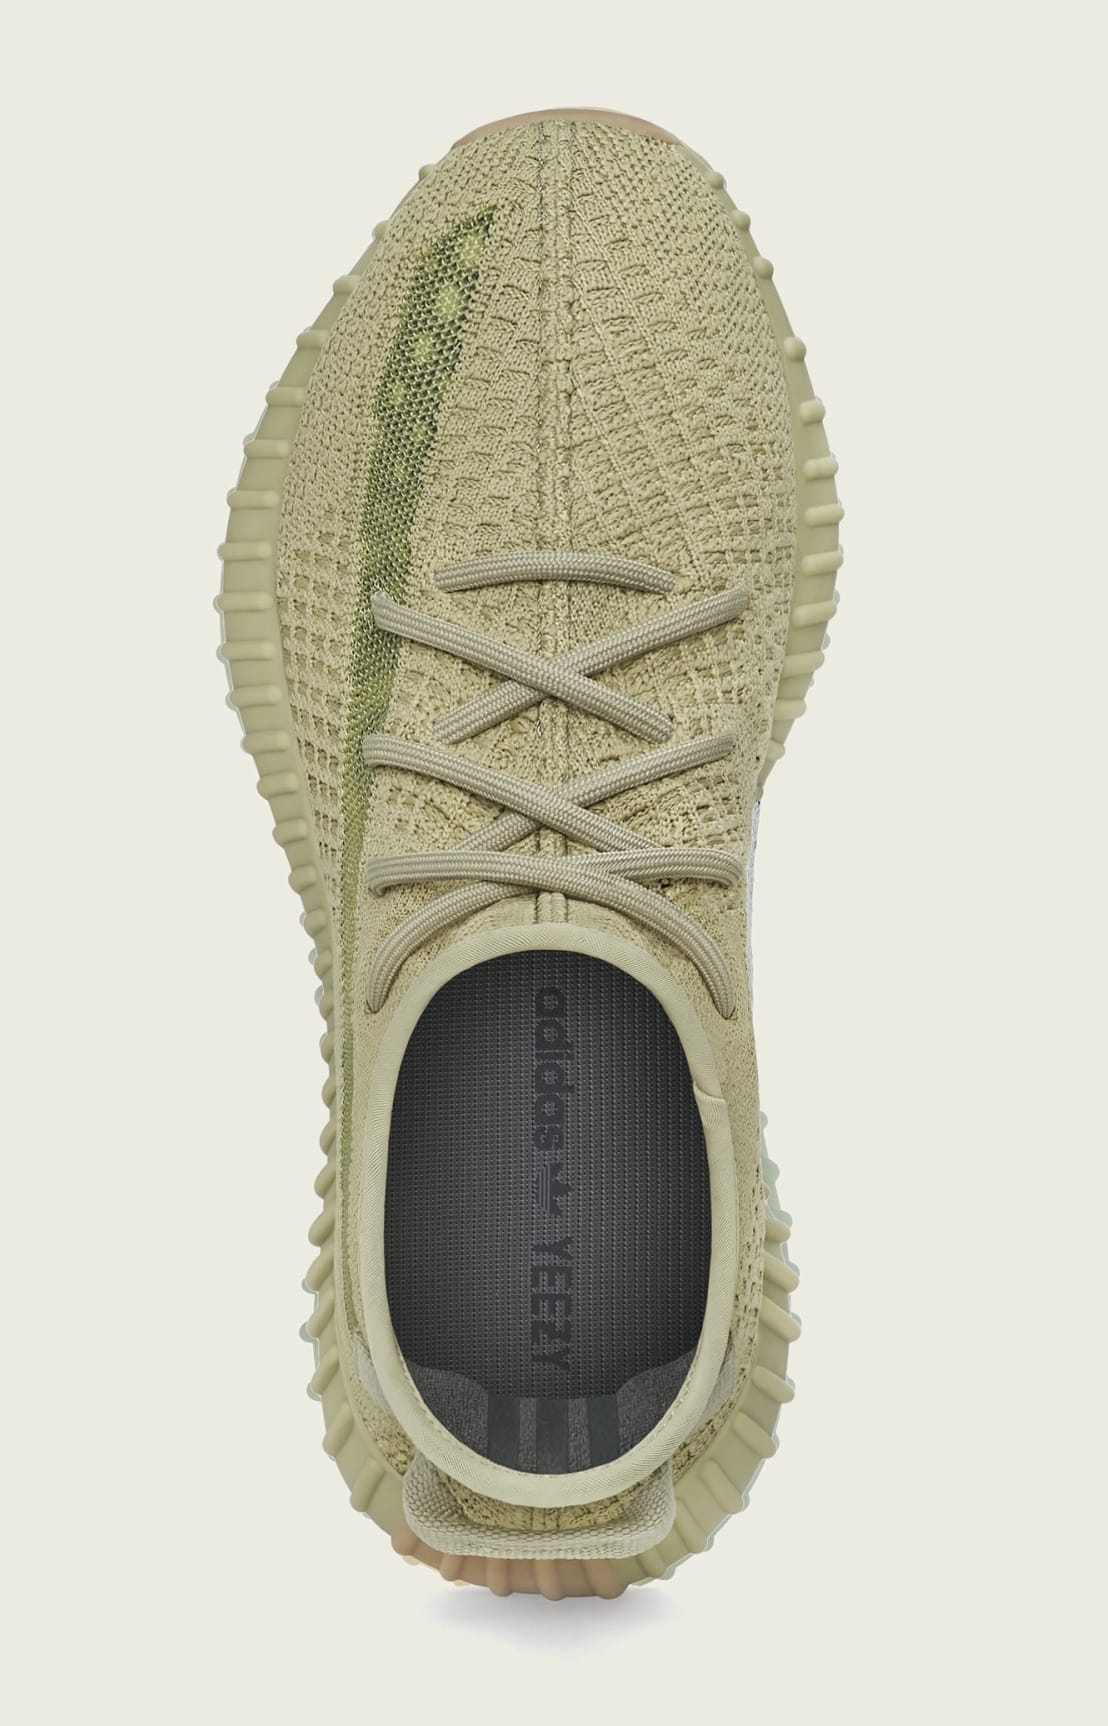 Adidas Yeezy Boost 350 V2 'Sulfur' FY5346 Top